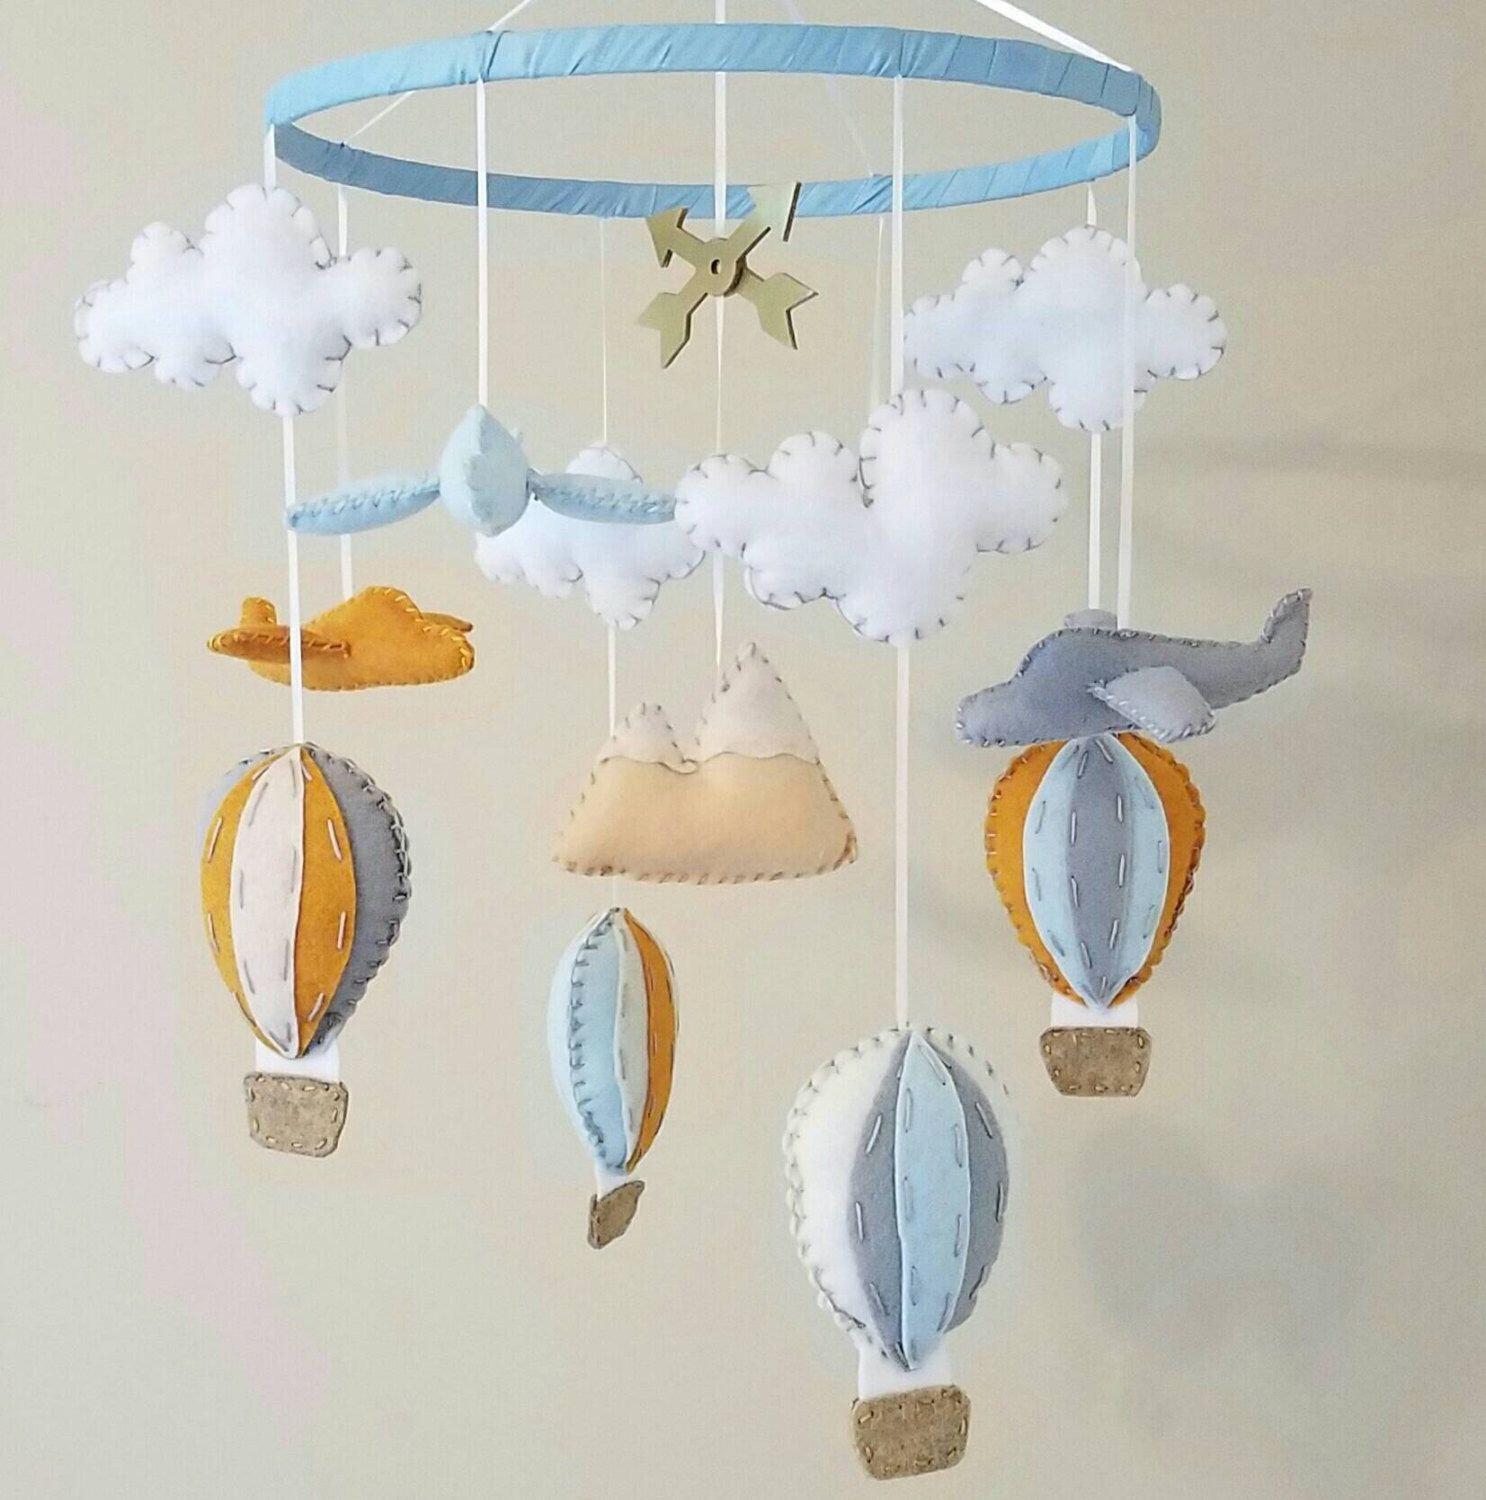 Pin by Theresa Higson on Share the Etsy Love Airplane